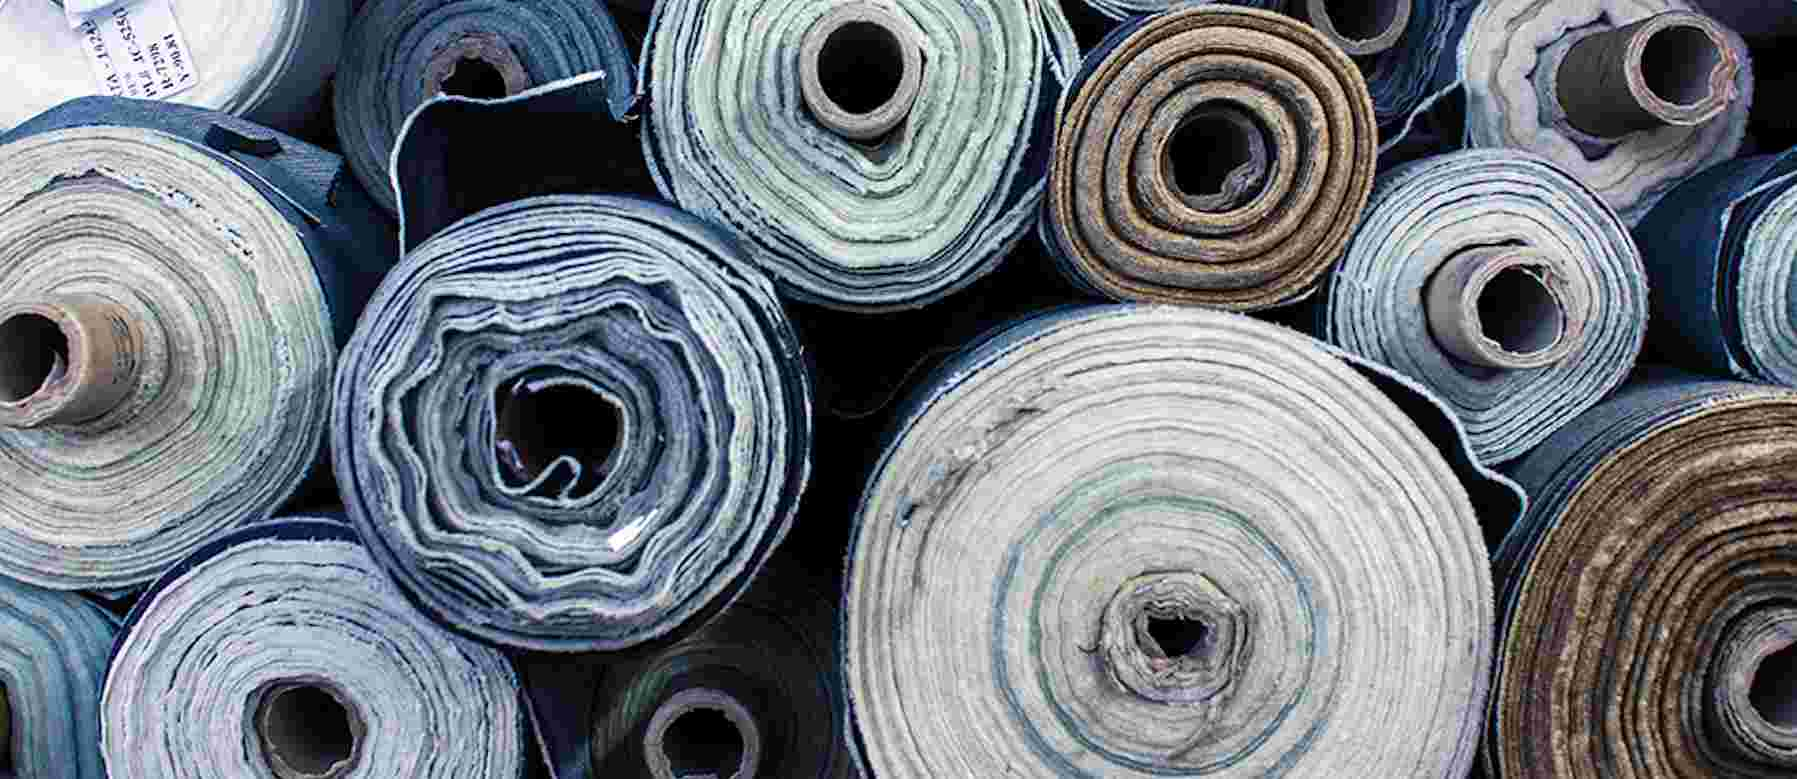 Fabric Sourcing Everything Before Contacting A Factory?